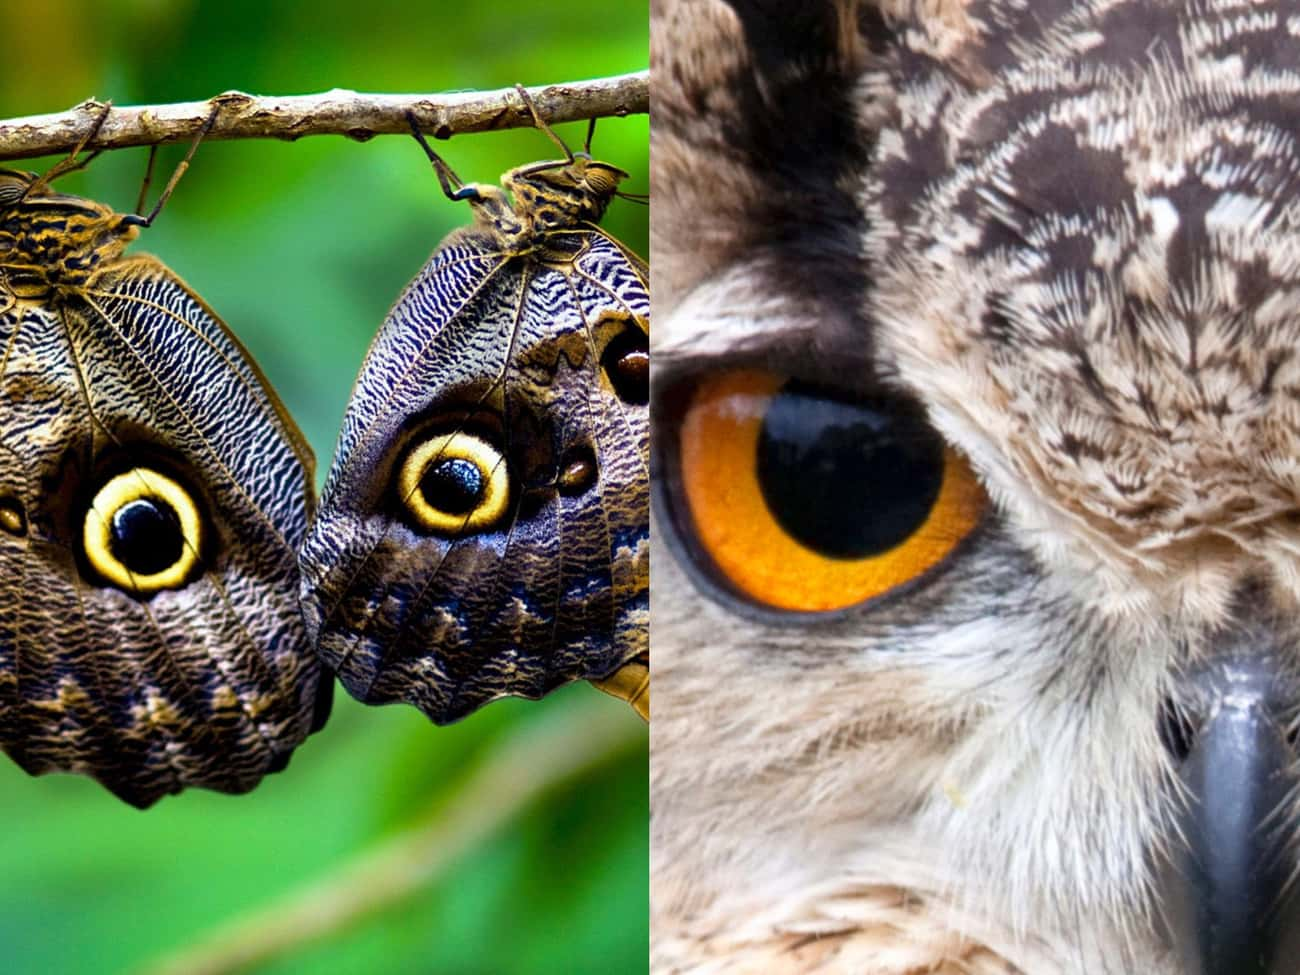 The Eyespots On Some Butterfli is listed (or ranked) 1 on the list Animal Imposters: 15 Creatures That Fake It To Make It